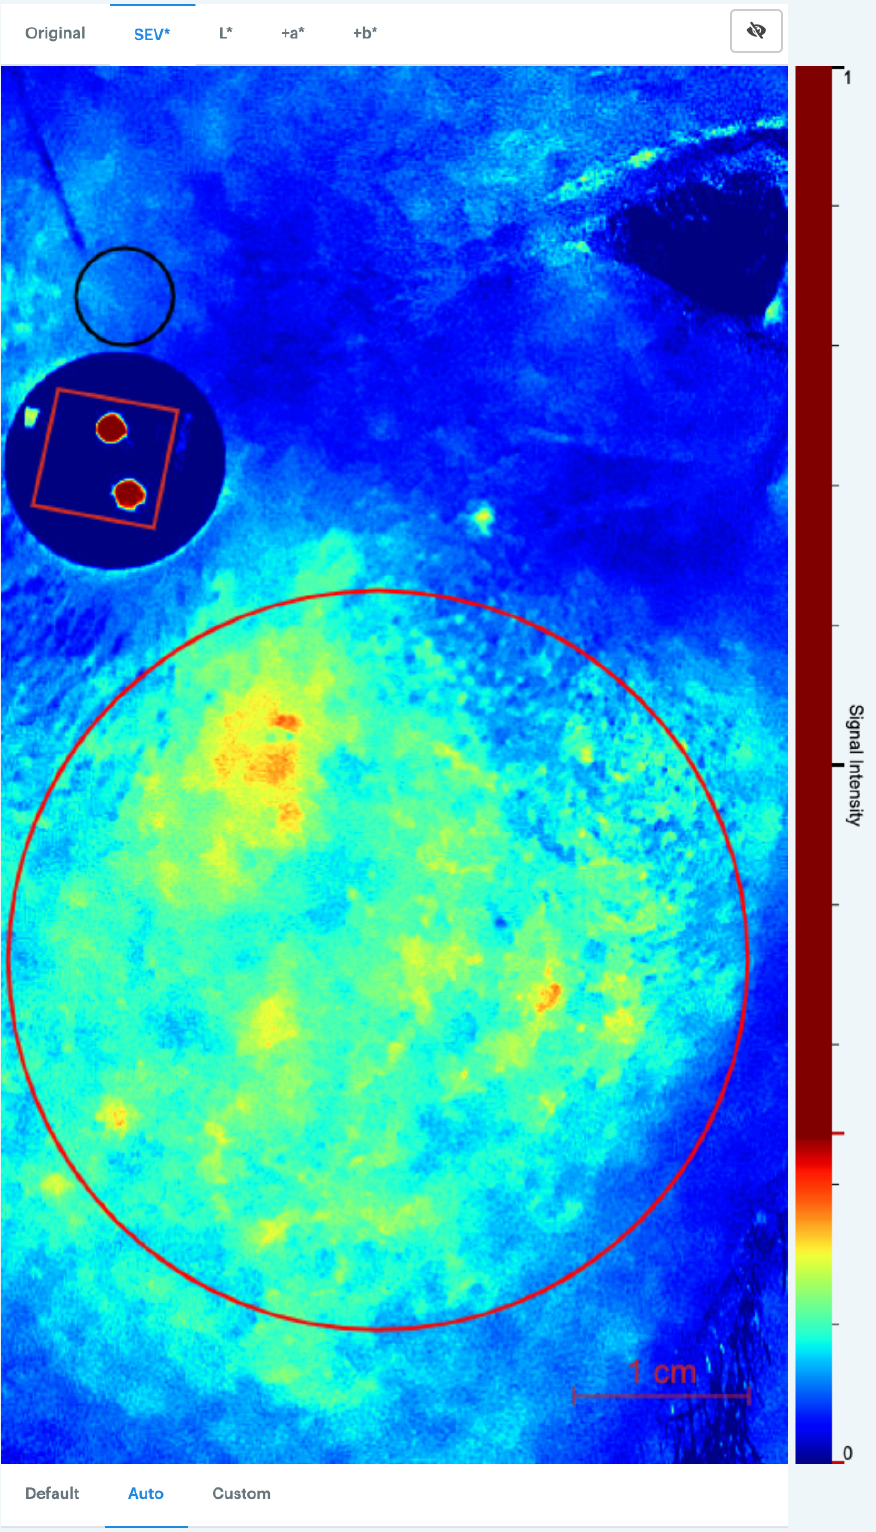 SEV Signal intensity map on ScarletredVision platform for rosacea patient before treatment